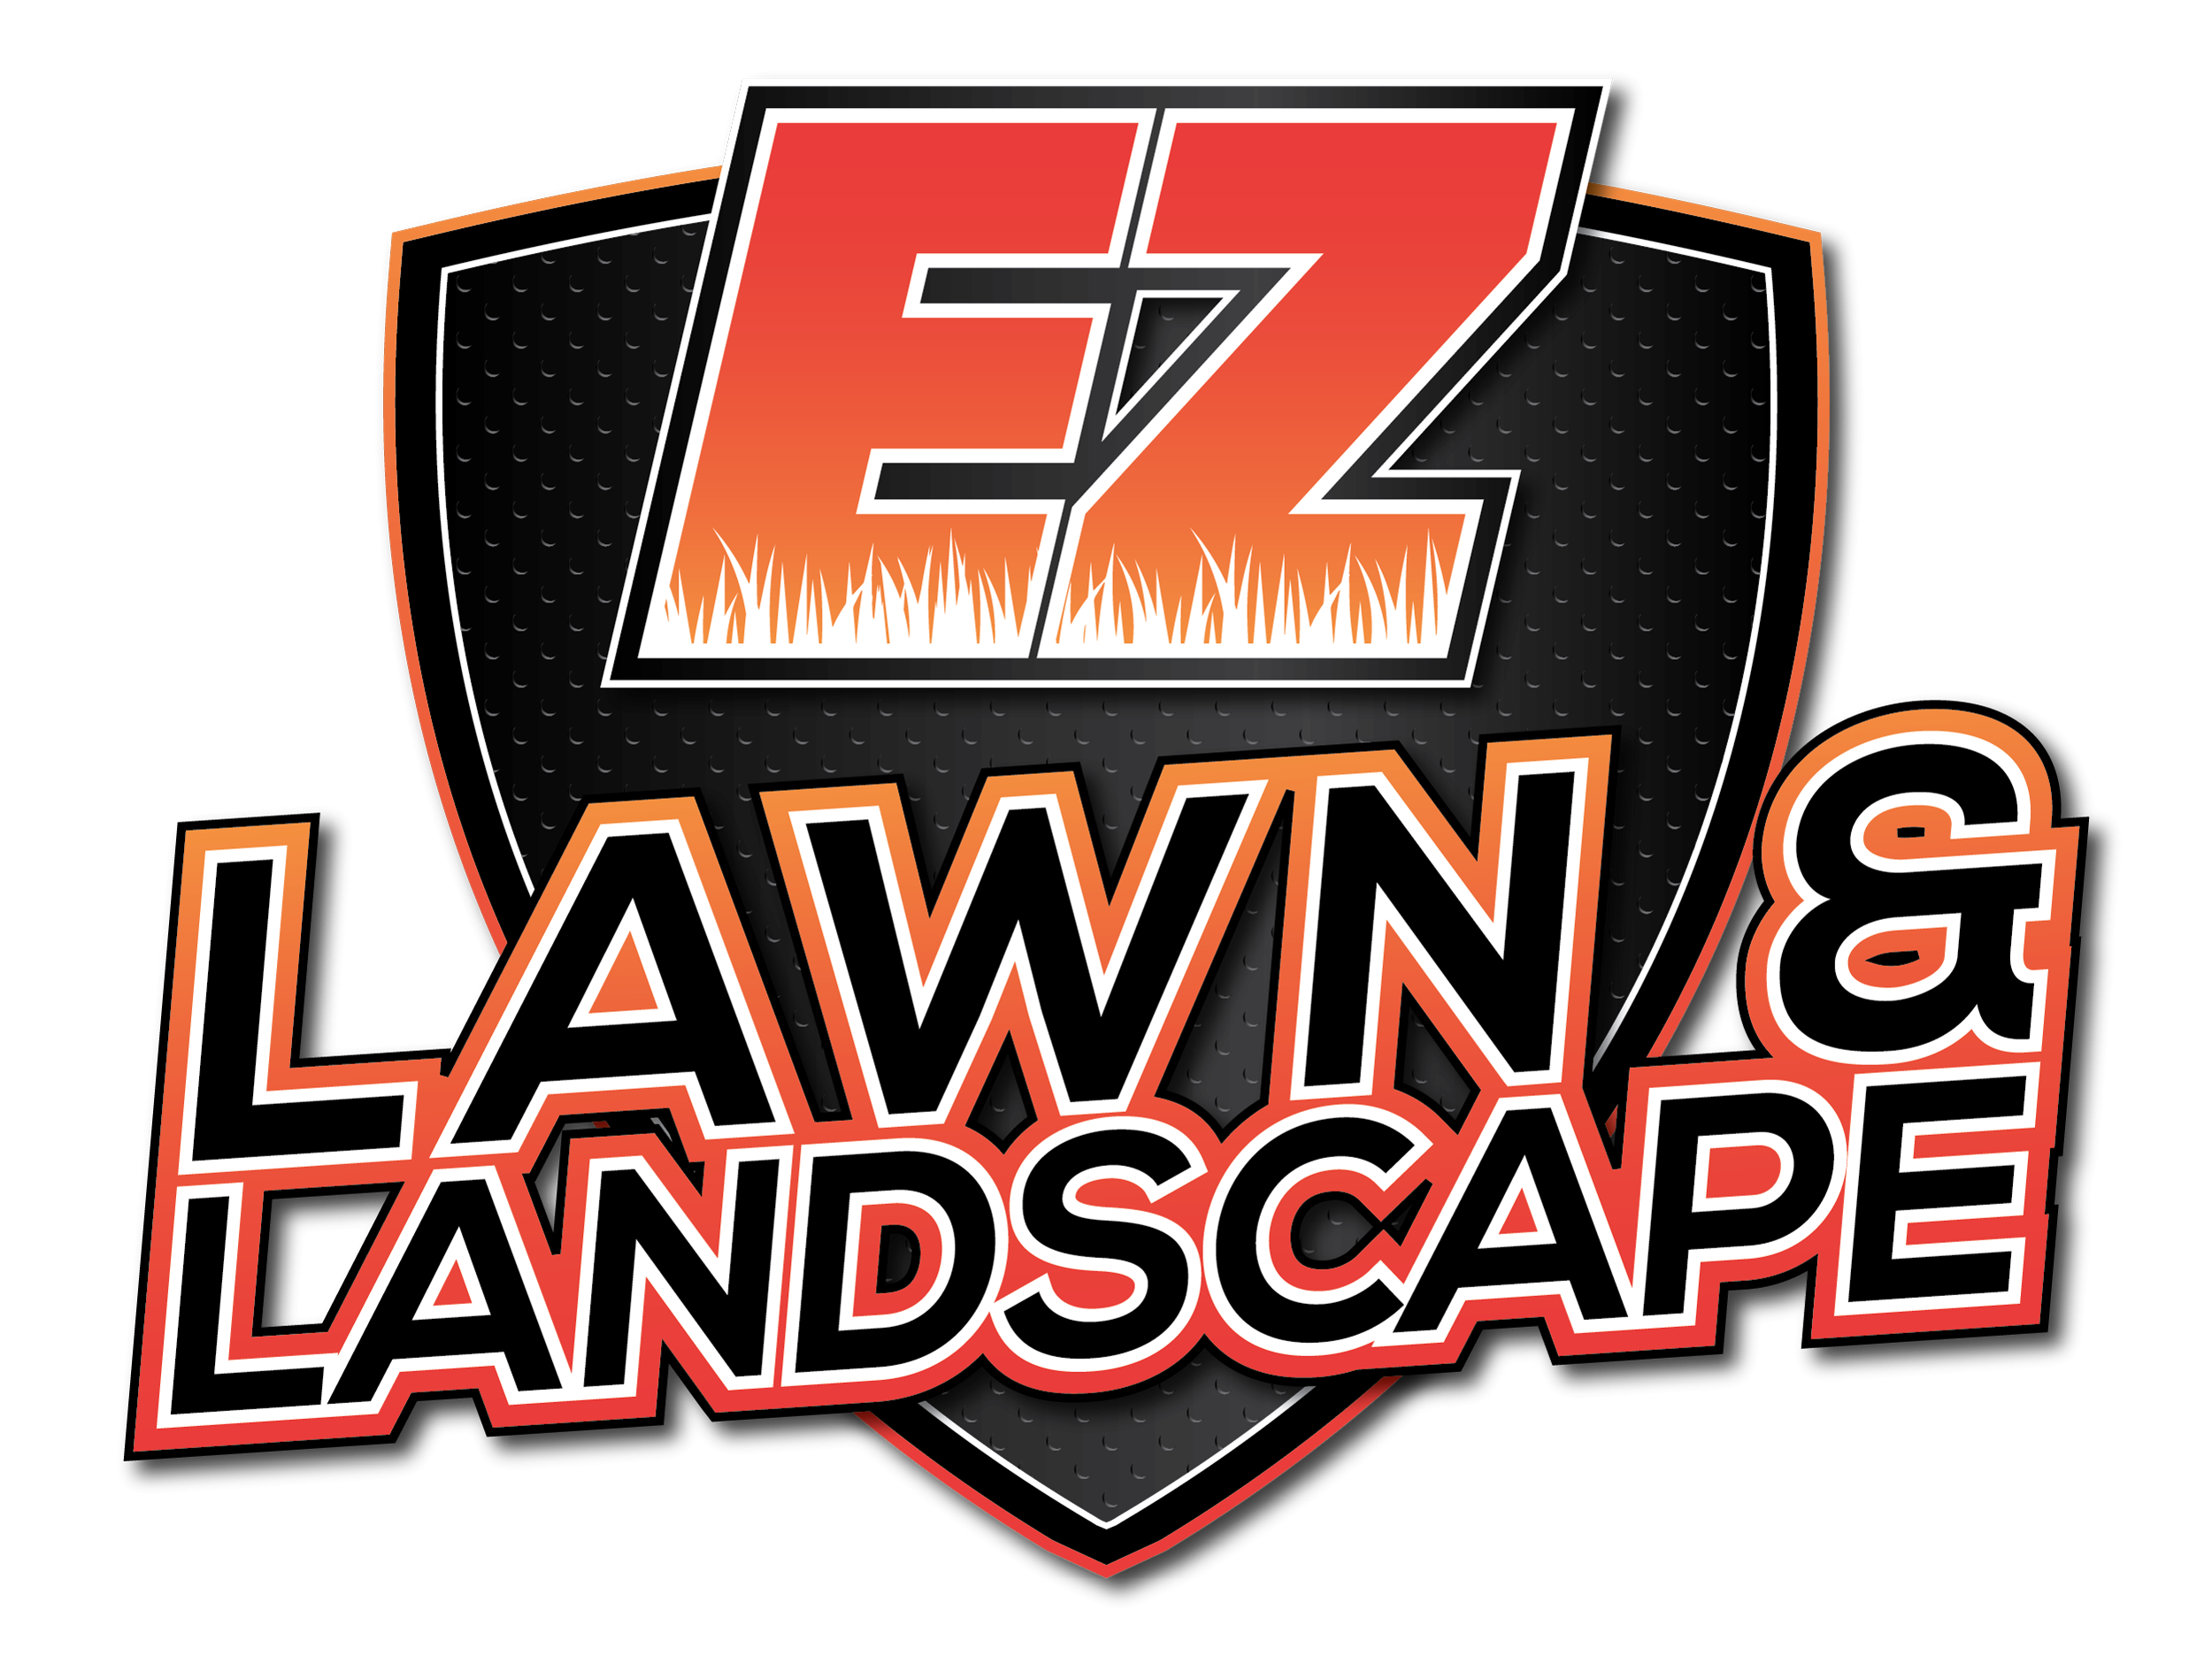 EZ Lawn and Landscape, LLC